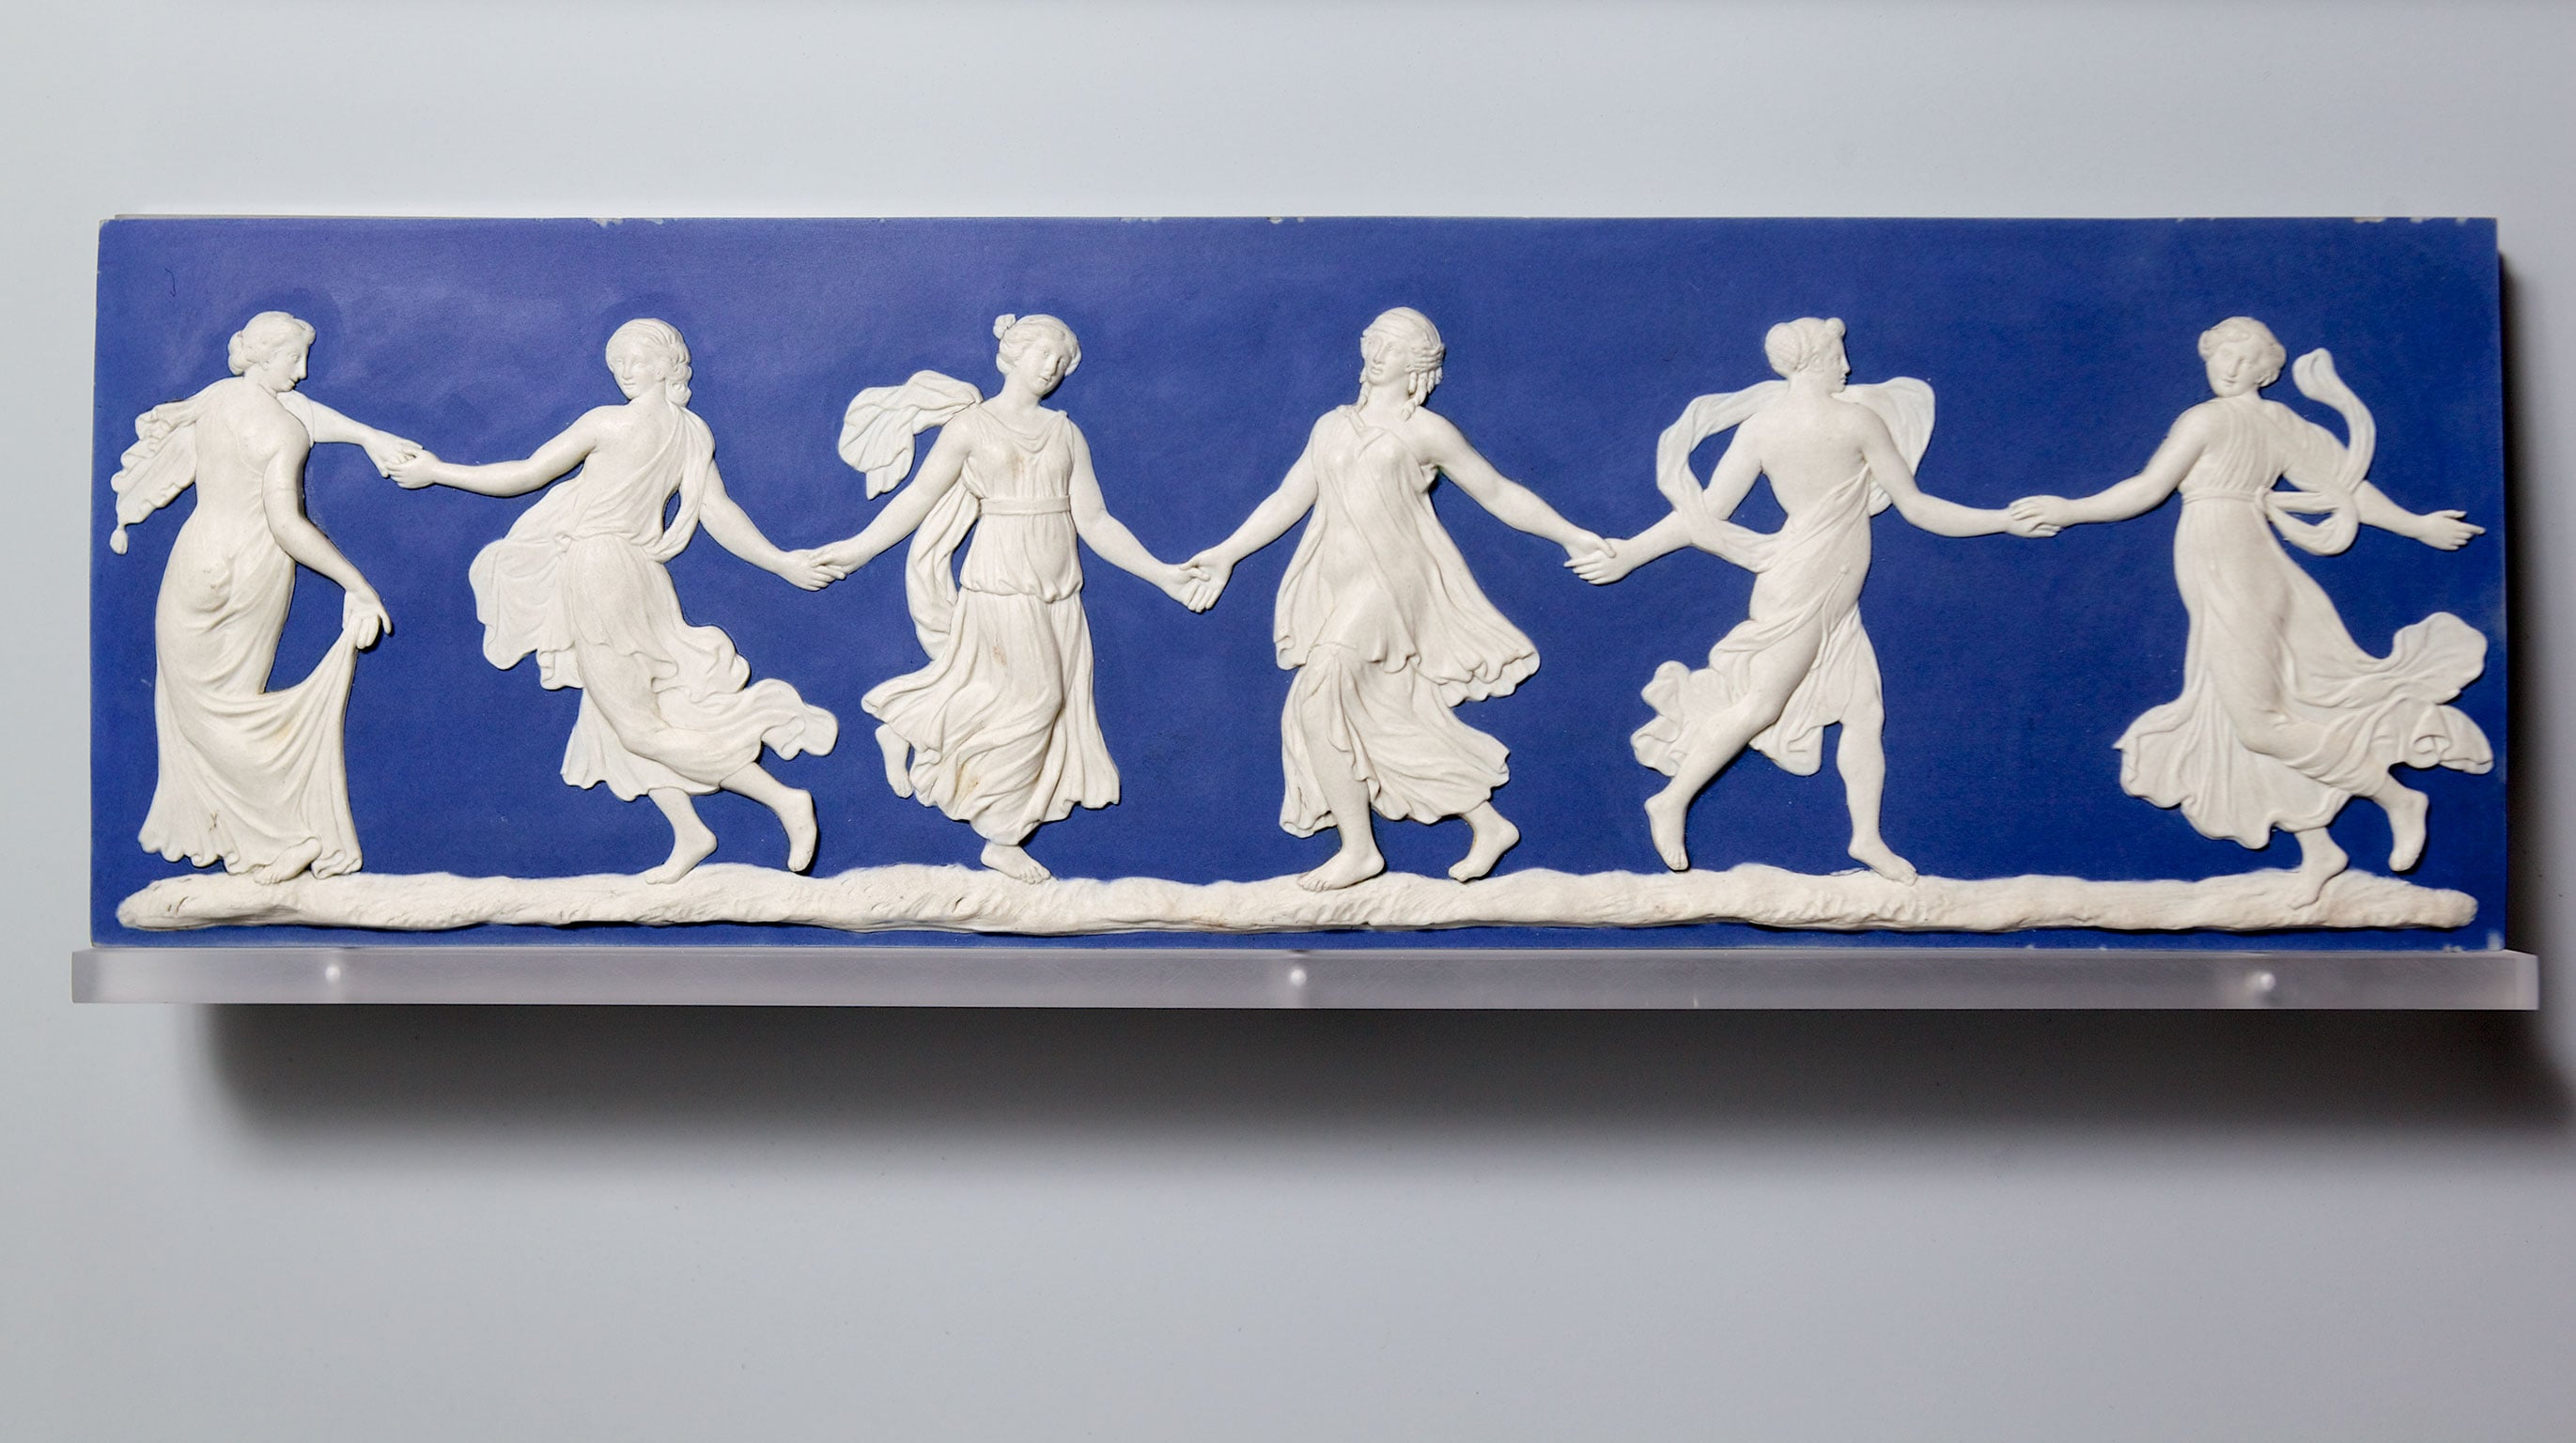 2. Dancing Hours, c.1770 - Courtesy The Wedgwood Museum. Photo: © Phil Sayer